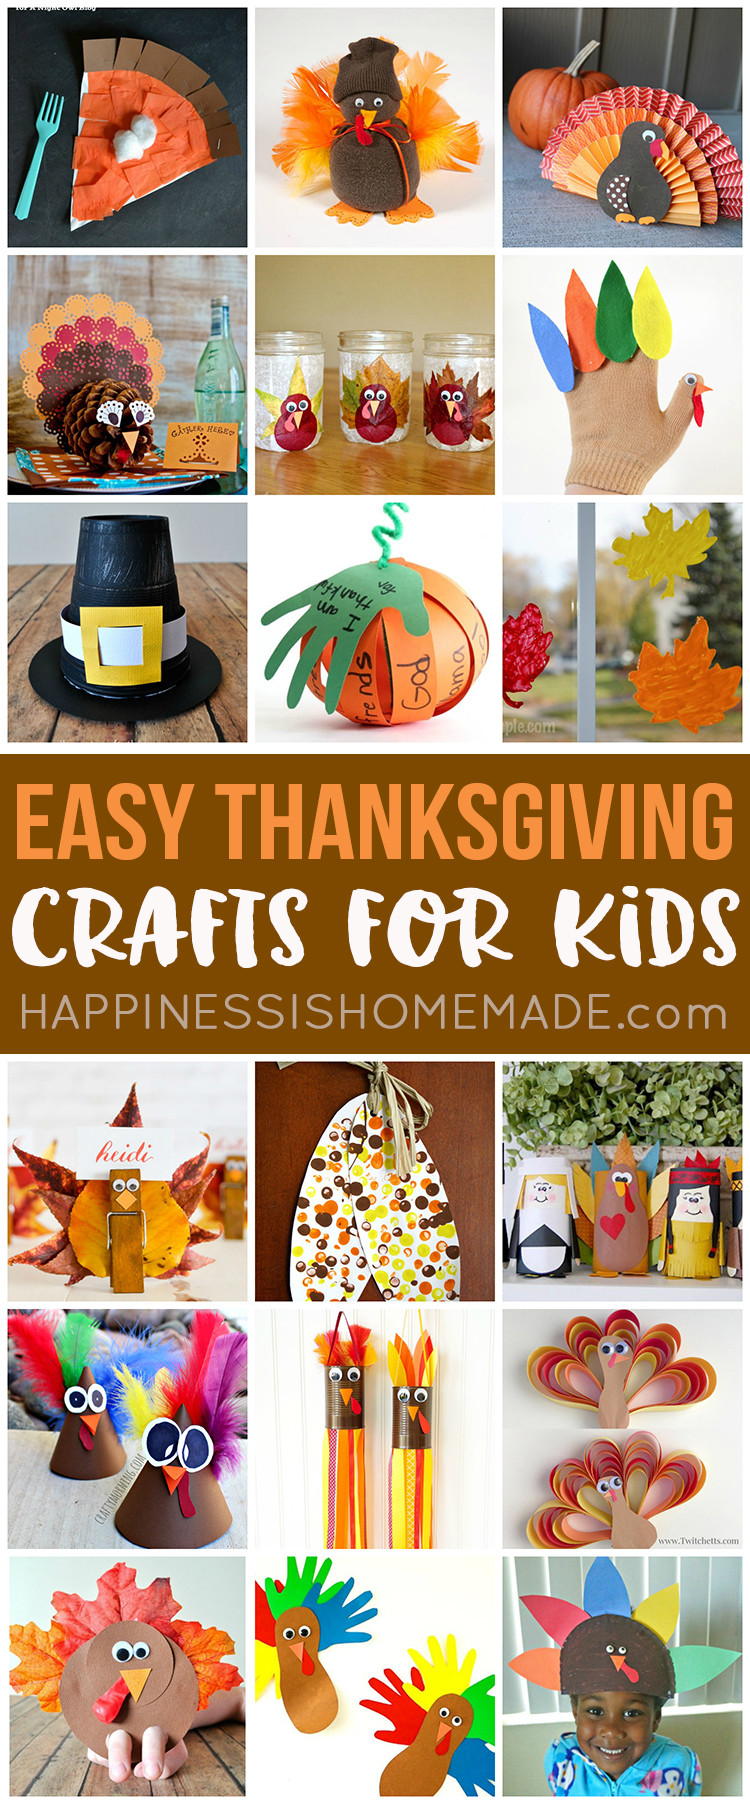 Quick And Easy Crafts For Kids  Easy Thanksgiving Crafts for Kids to Make Happiness is